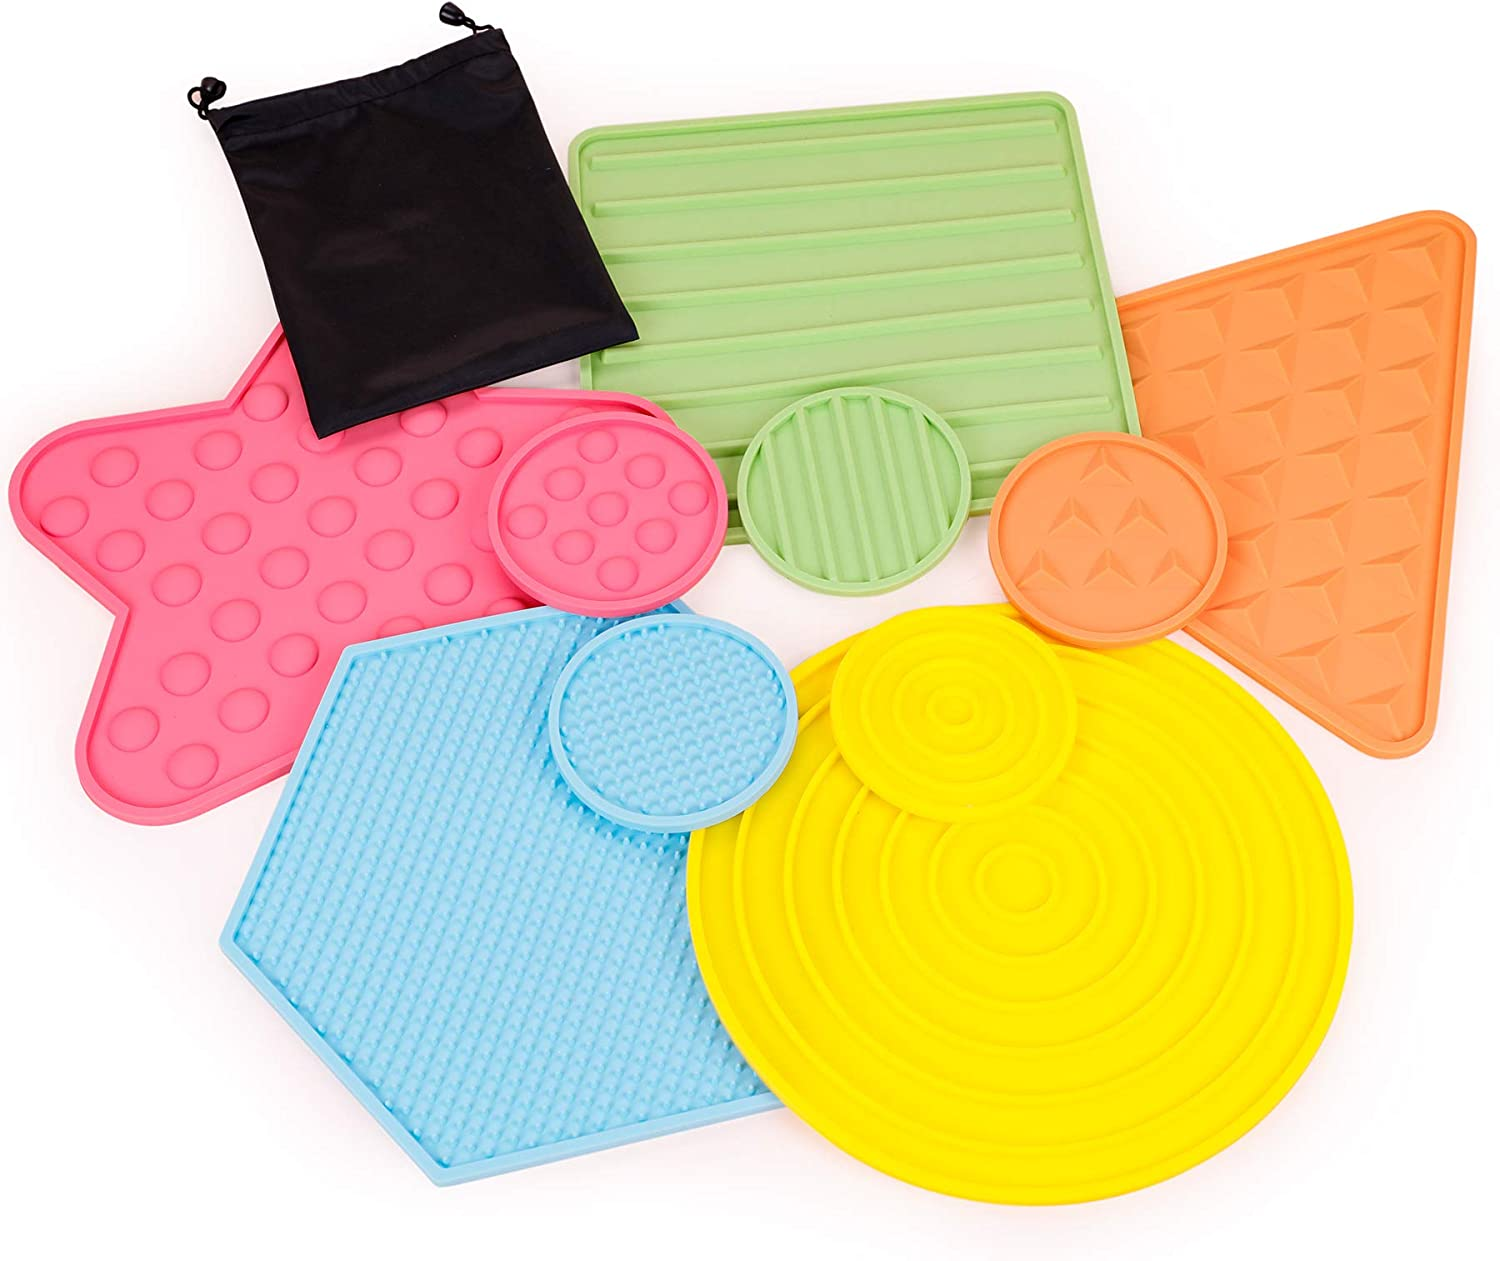 EDUSENSE Sensory Silicon Texture mats- in Home Learning Toy for Calming Sensory Play - Set of 10 - Assists Autistic Toddlers & Children